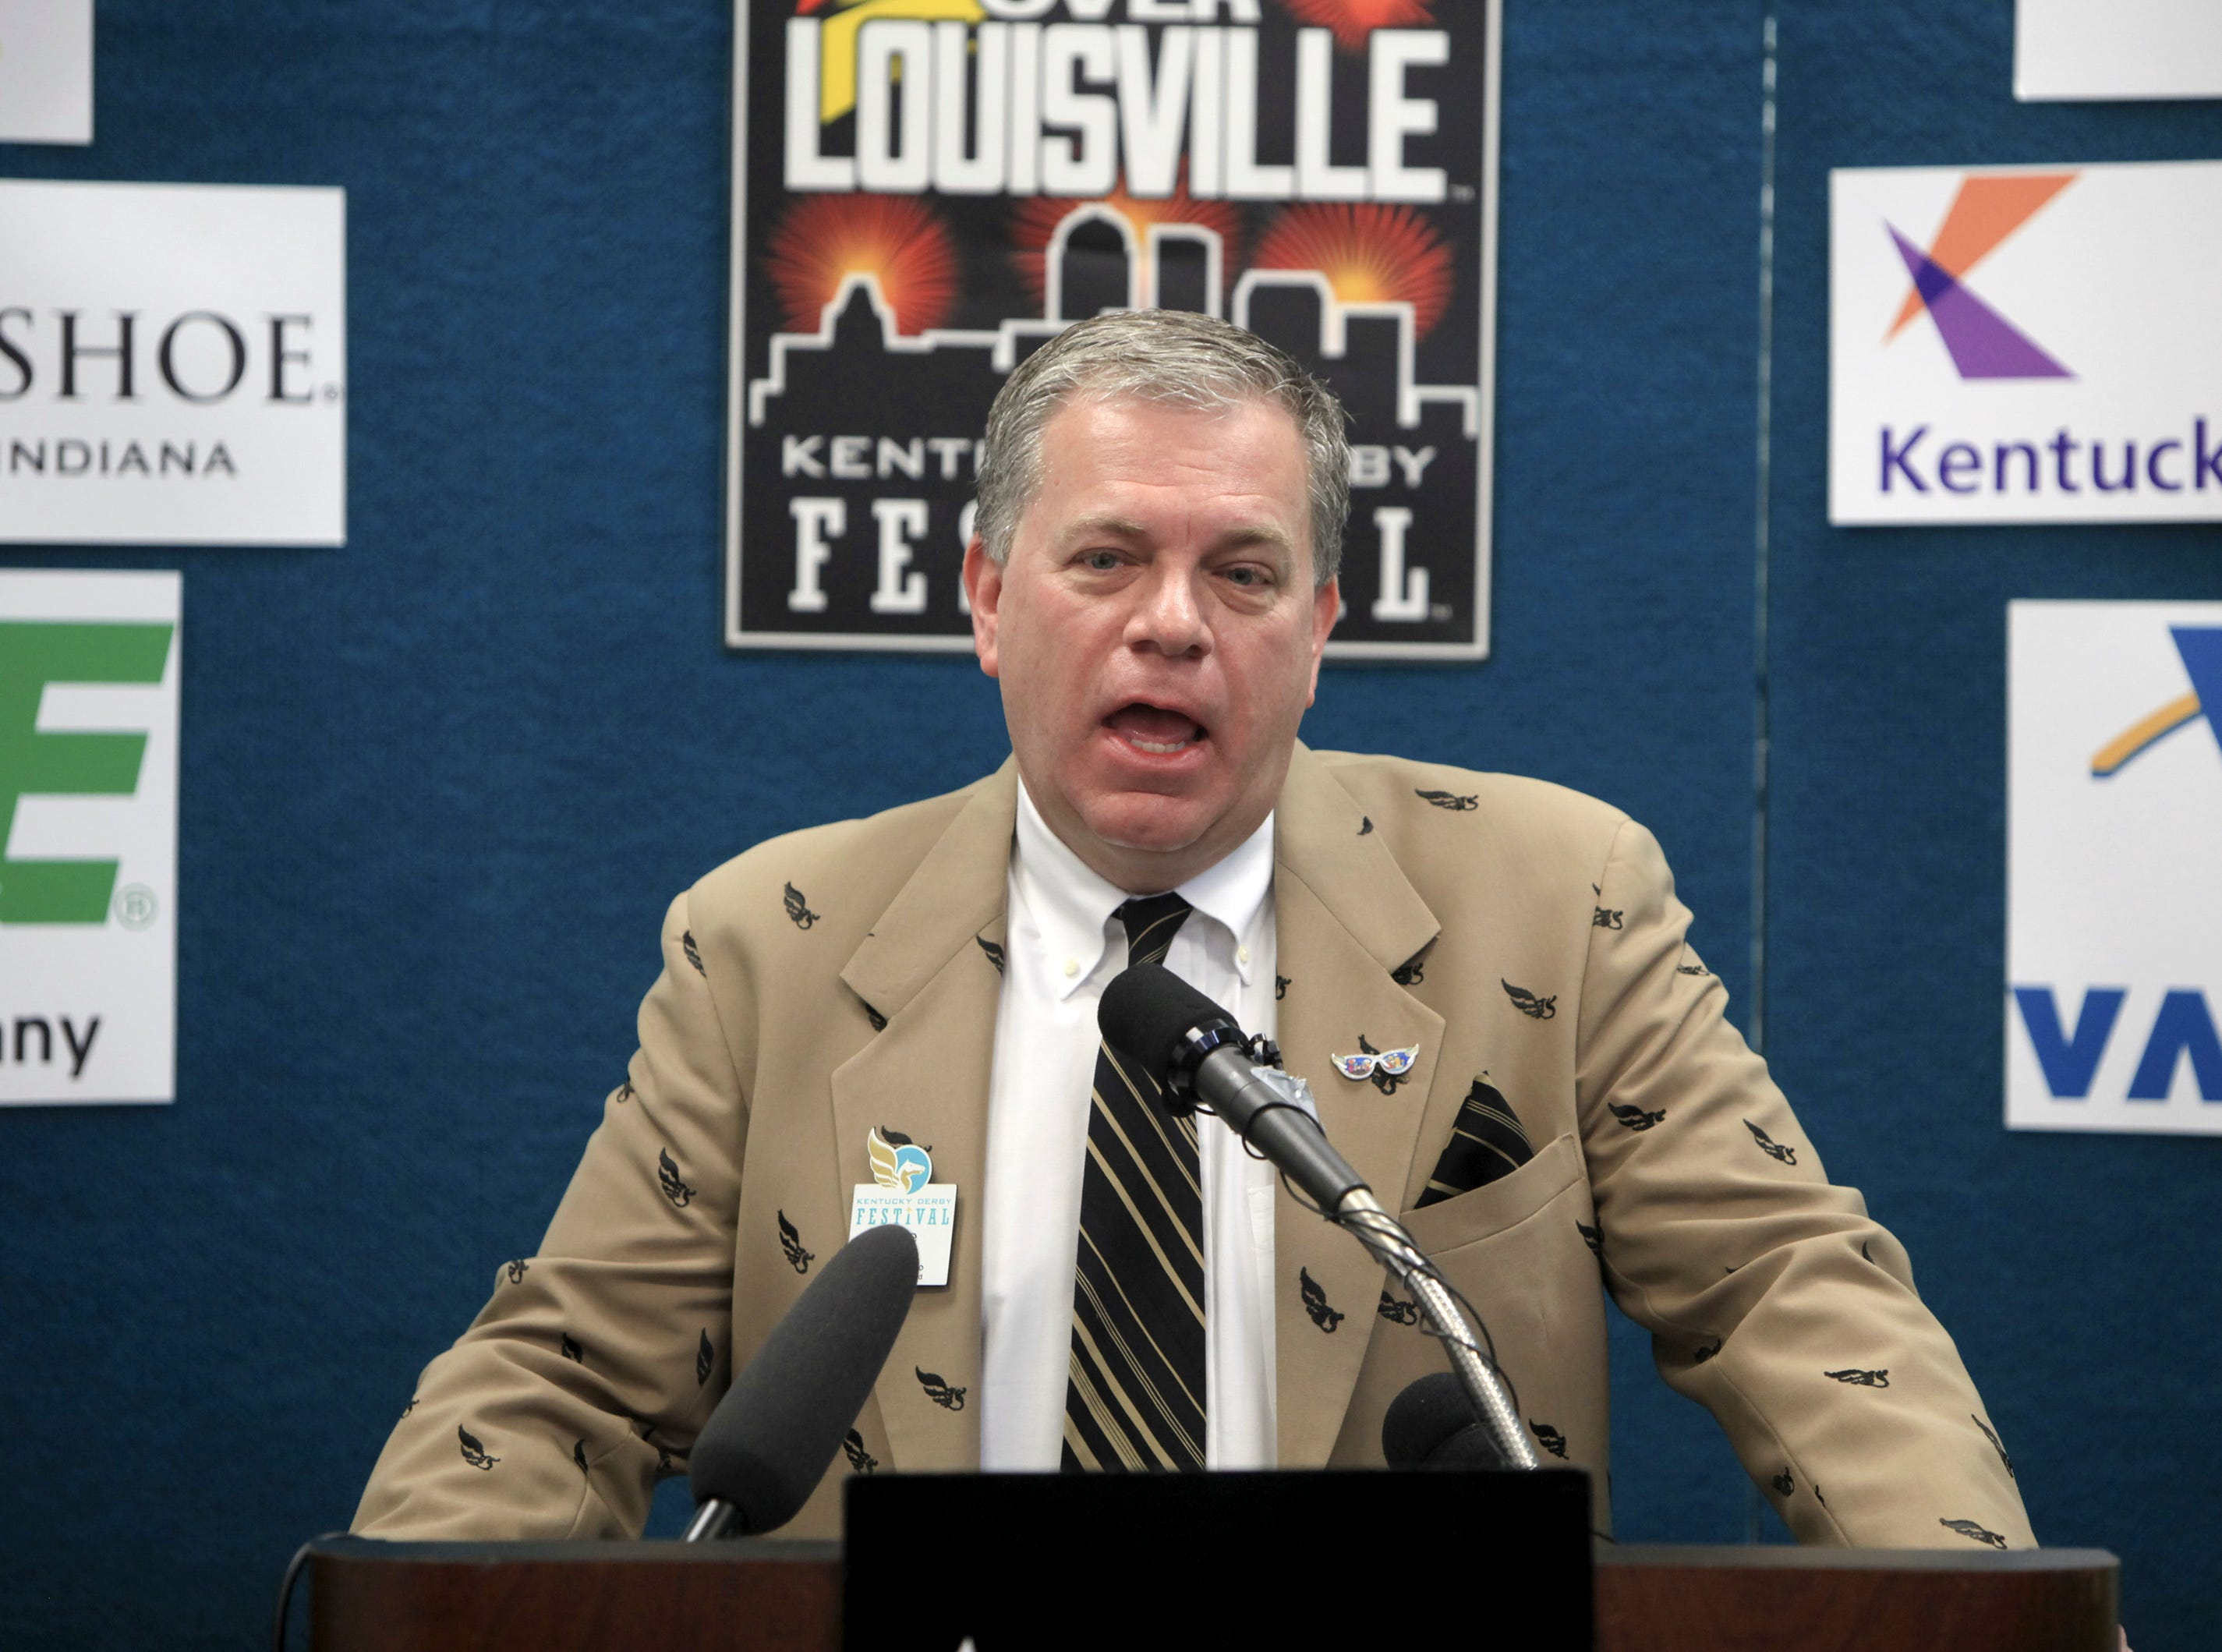 Mike Berry, President and CEO Kentucky Derby Festival, speaks during a press conference announcing the sponsors for Thunder and the theme, Boom with a View.